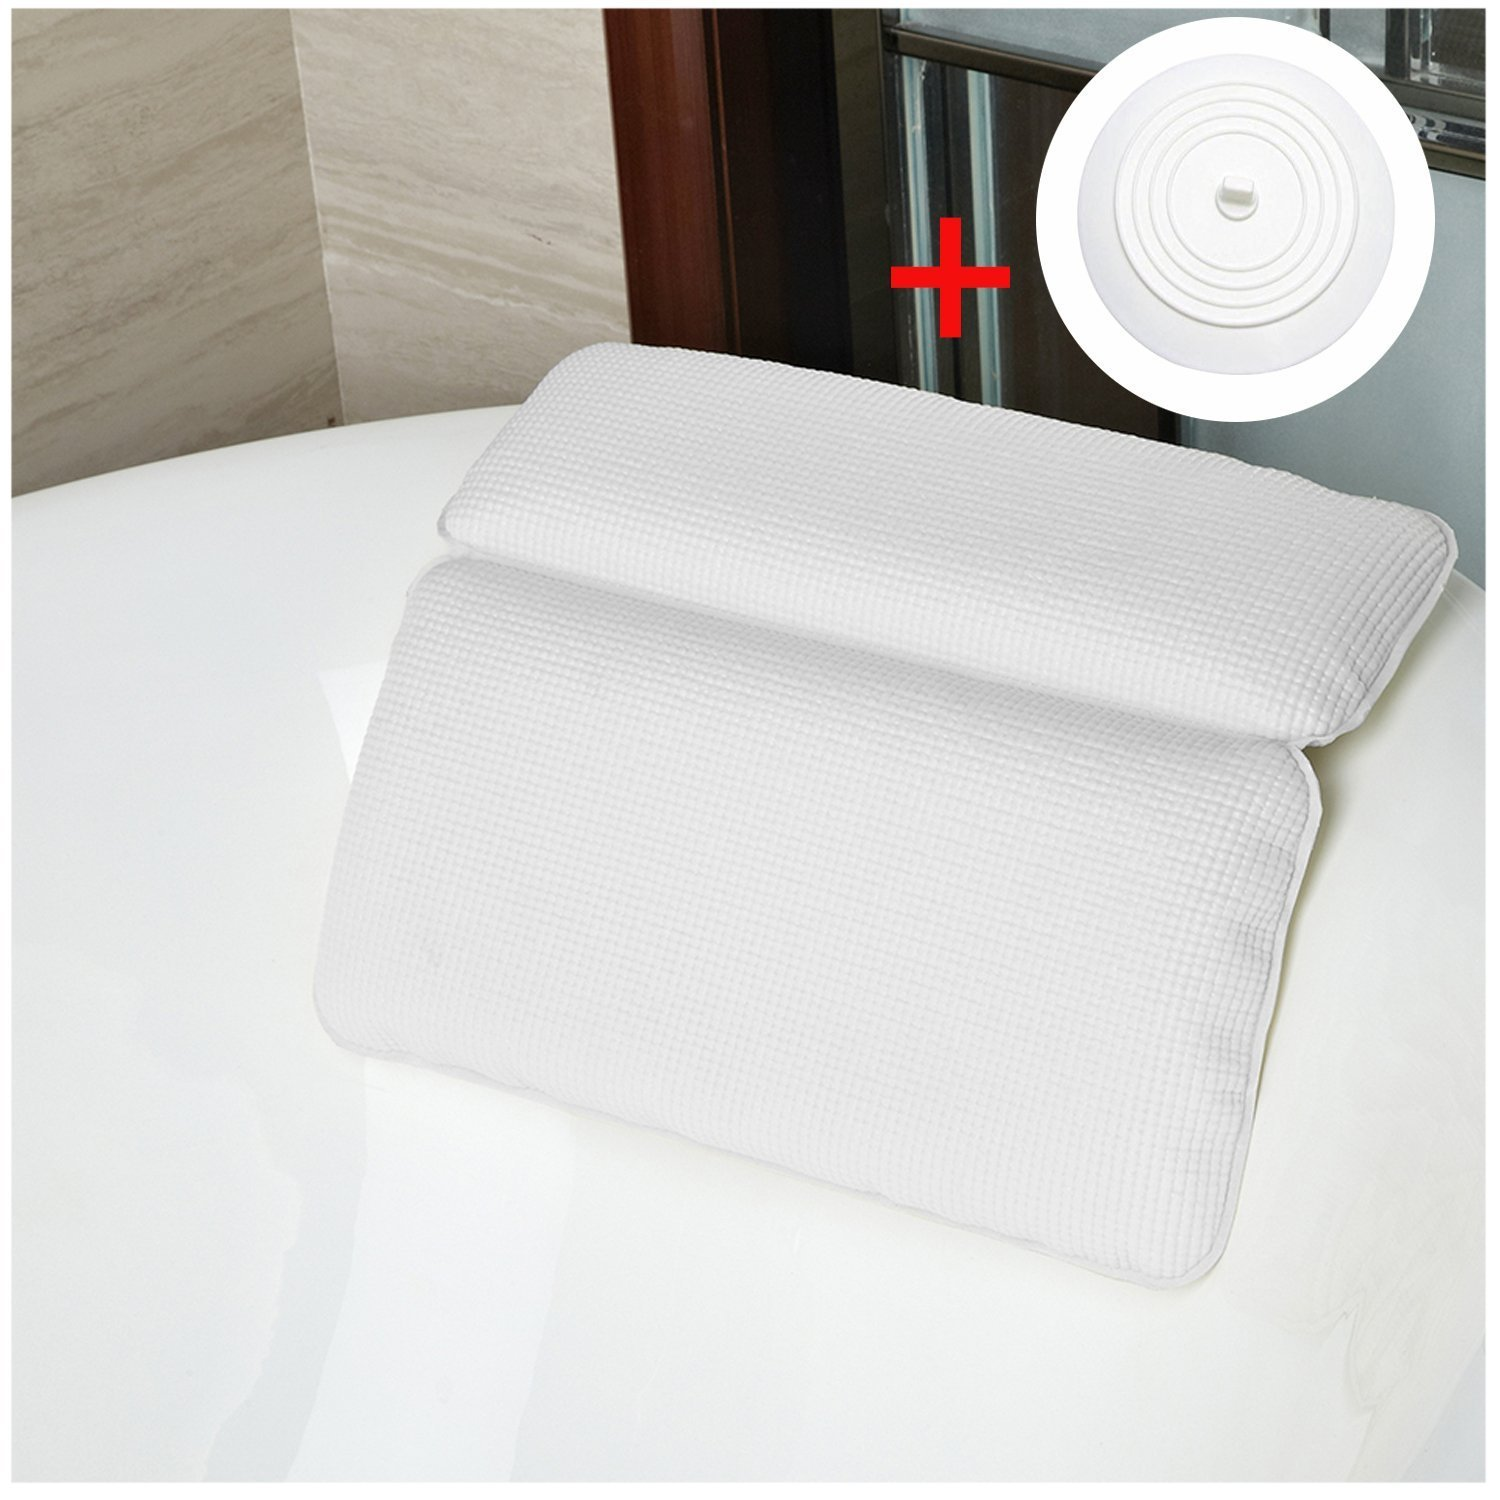 Bath Pillow, Kapmore Spa Bath Pillows Strong Suction Cups Waterproof Head Neck Cushioned Support Bathtubs Pillow For Men and Women Providing a Spa Experience in Home or Travel with Silicone Tub Stopper